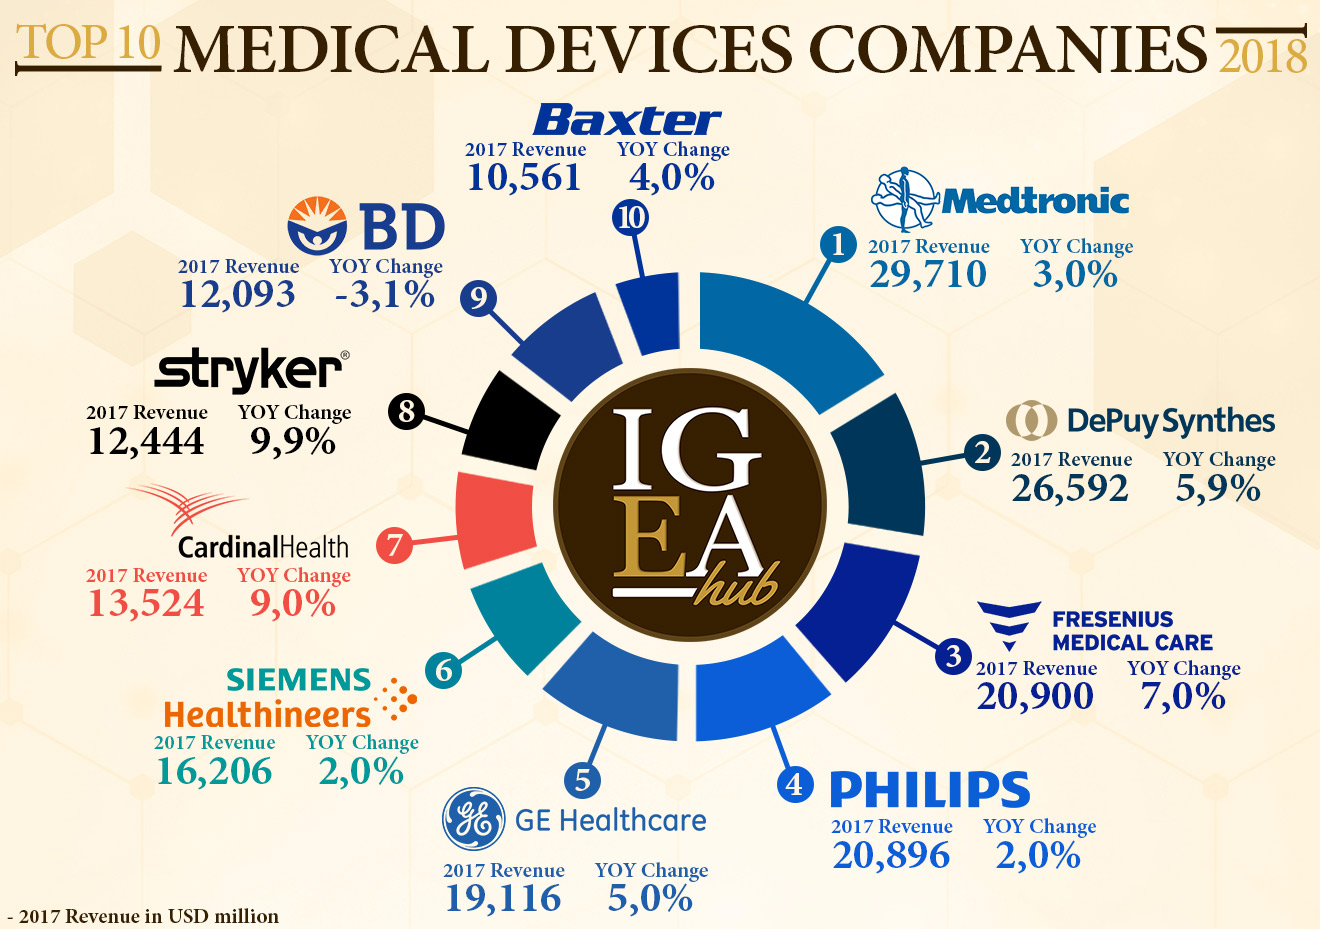 Top 10 Medical Device Companies – 2018 – OrthoFeed